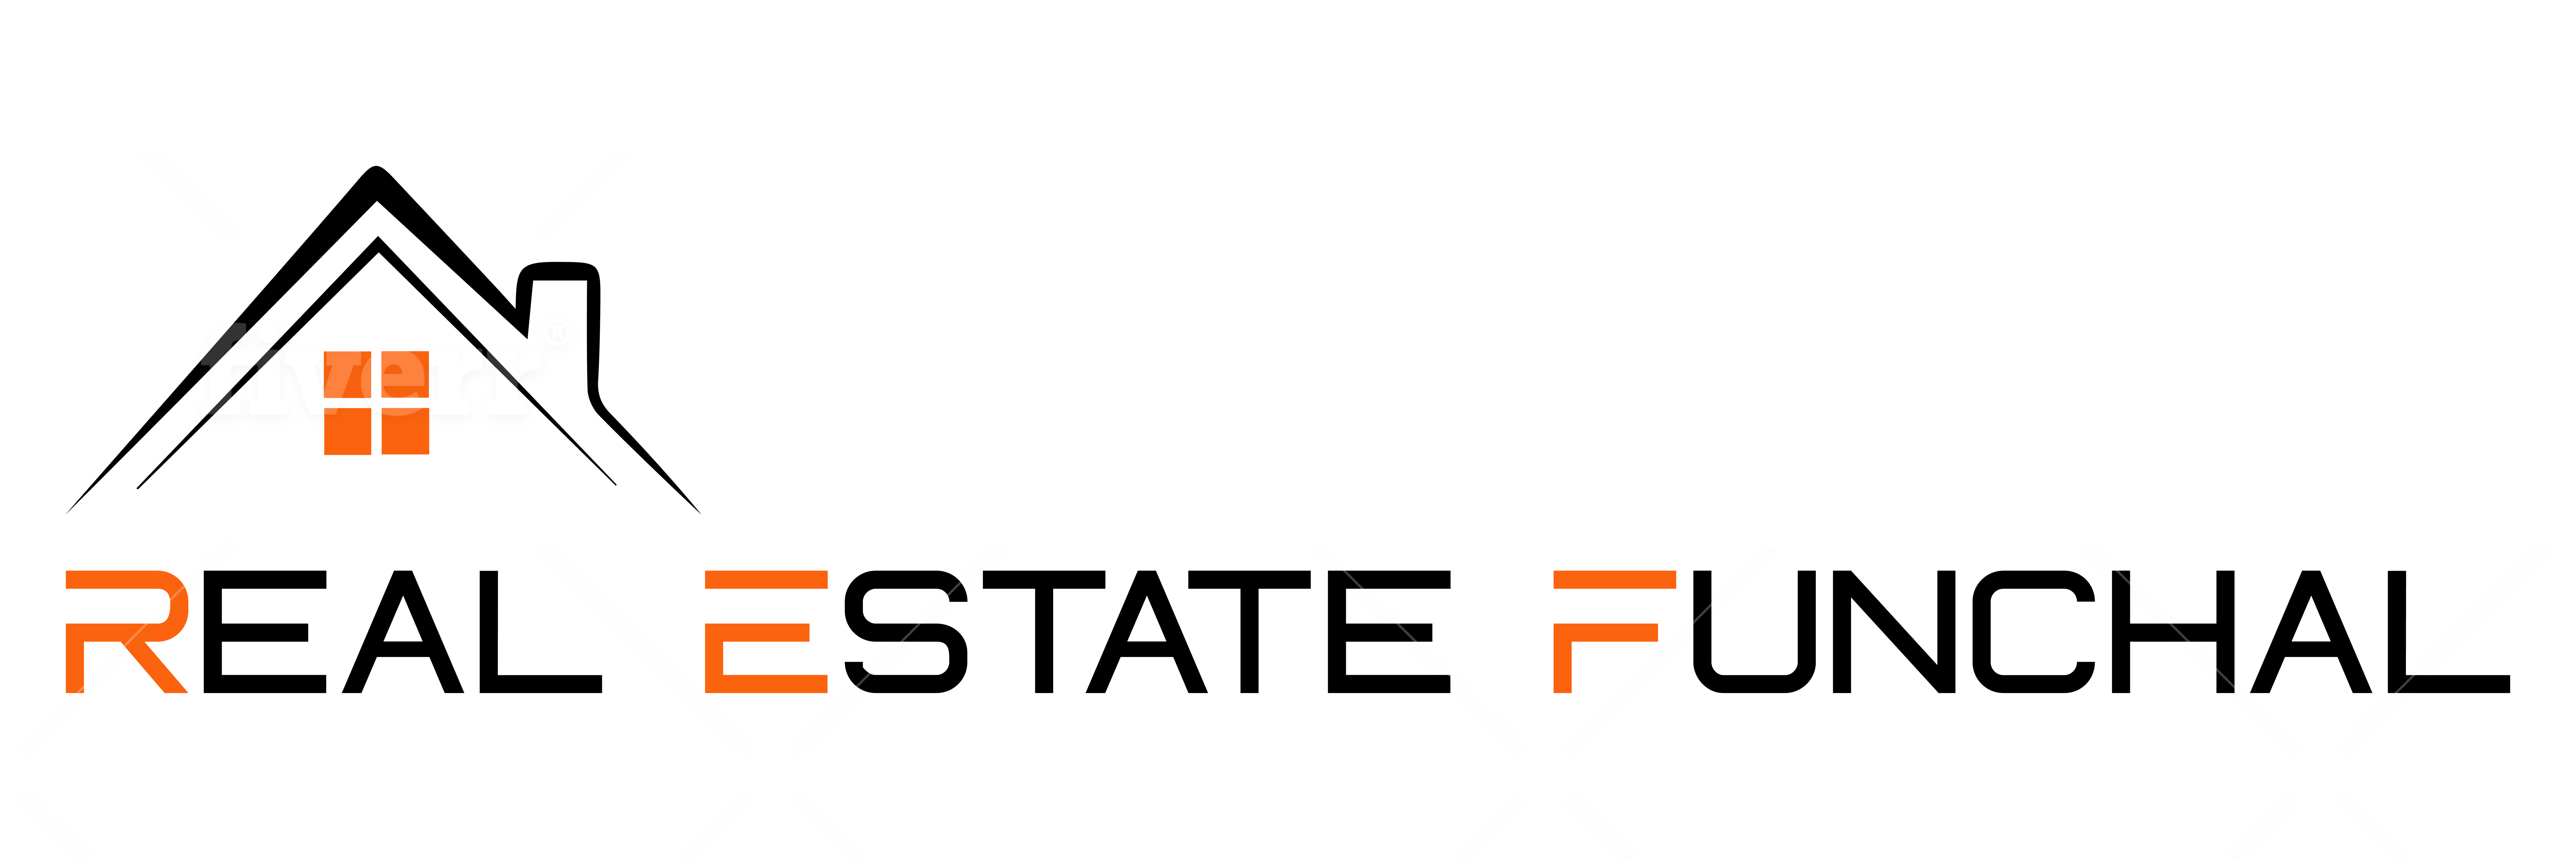 Real Estate Funchal - Agent Contact